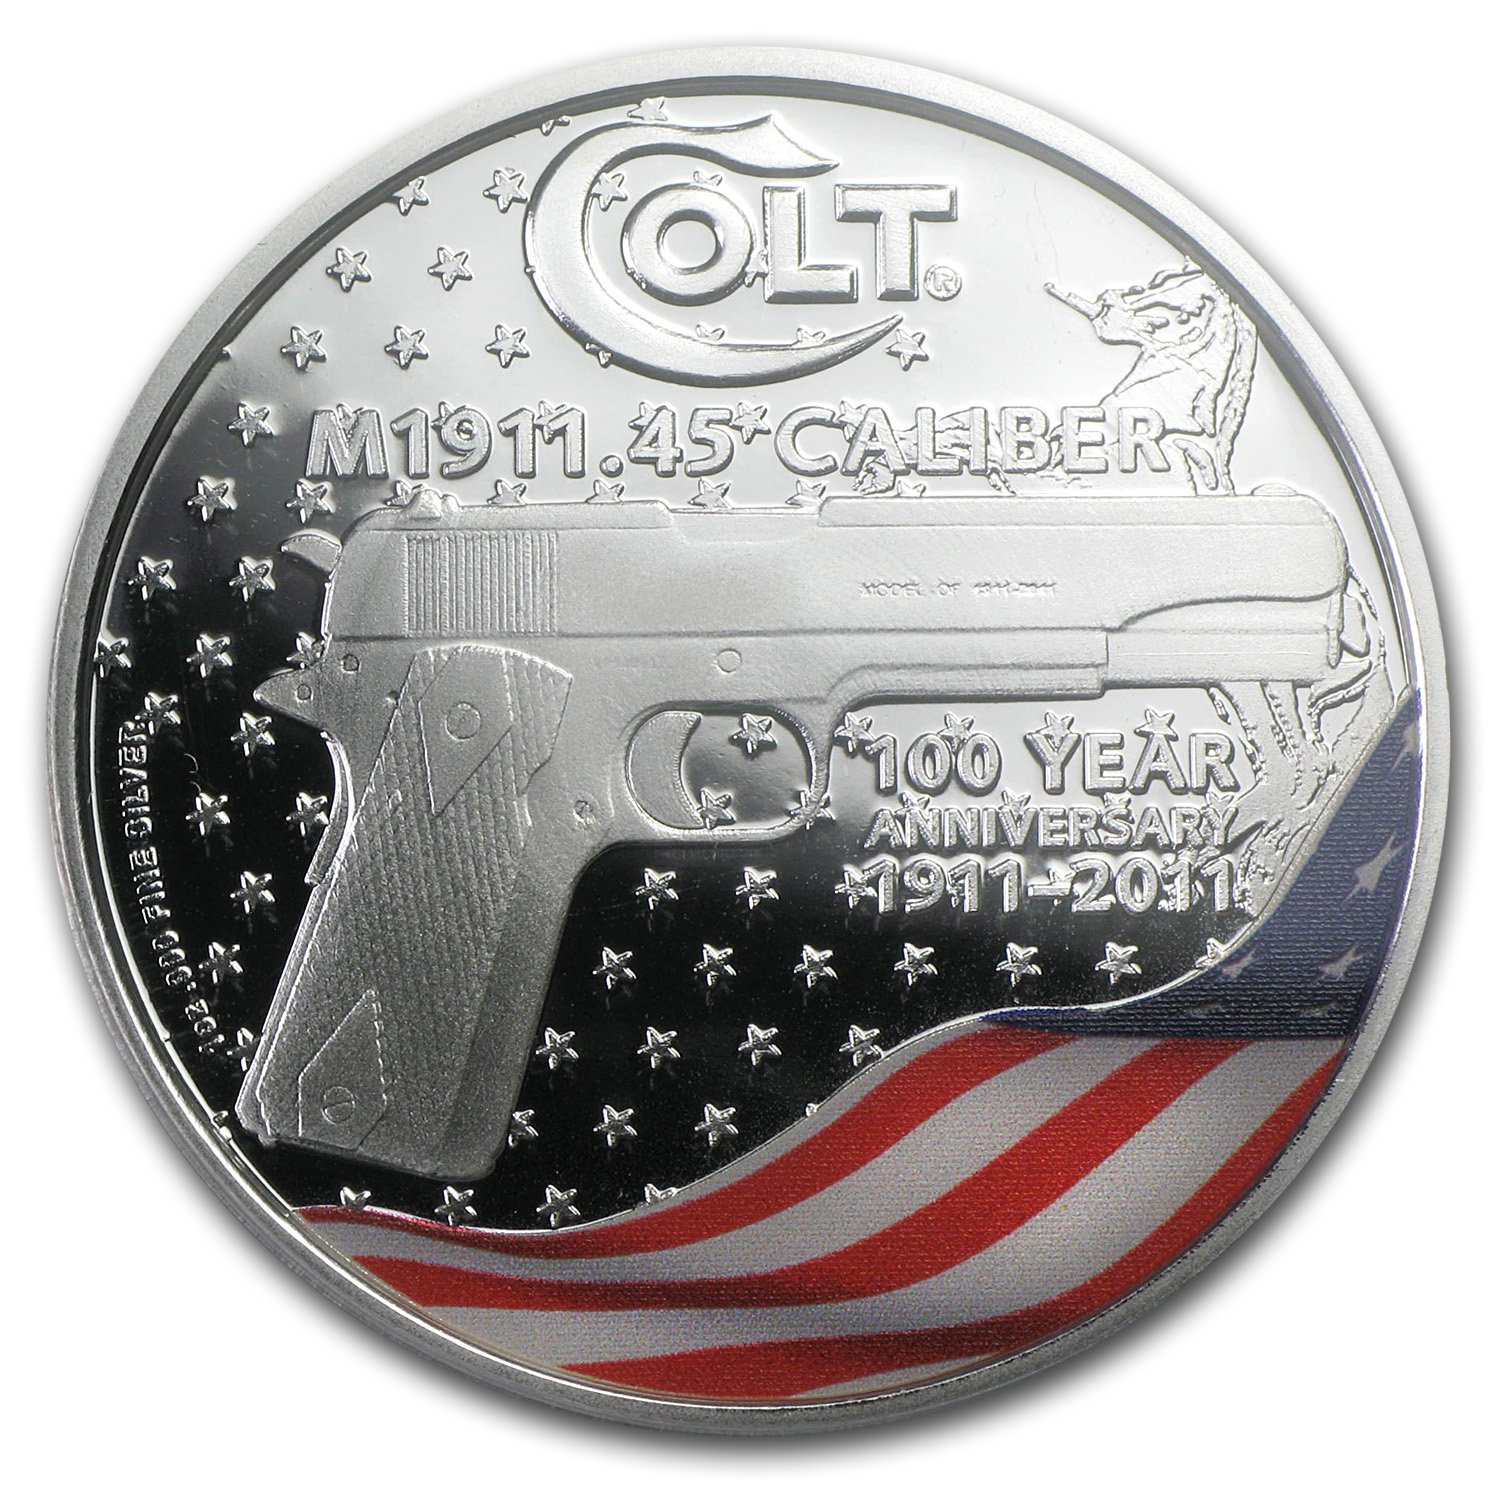 2011 New Zealand Mint Colt M1911 Gun 1 oz Silver Coin PCGS PR-70